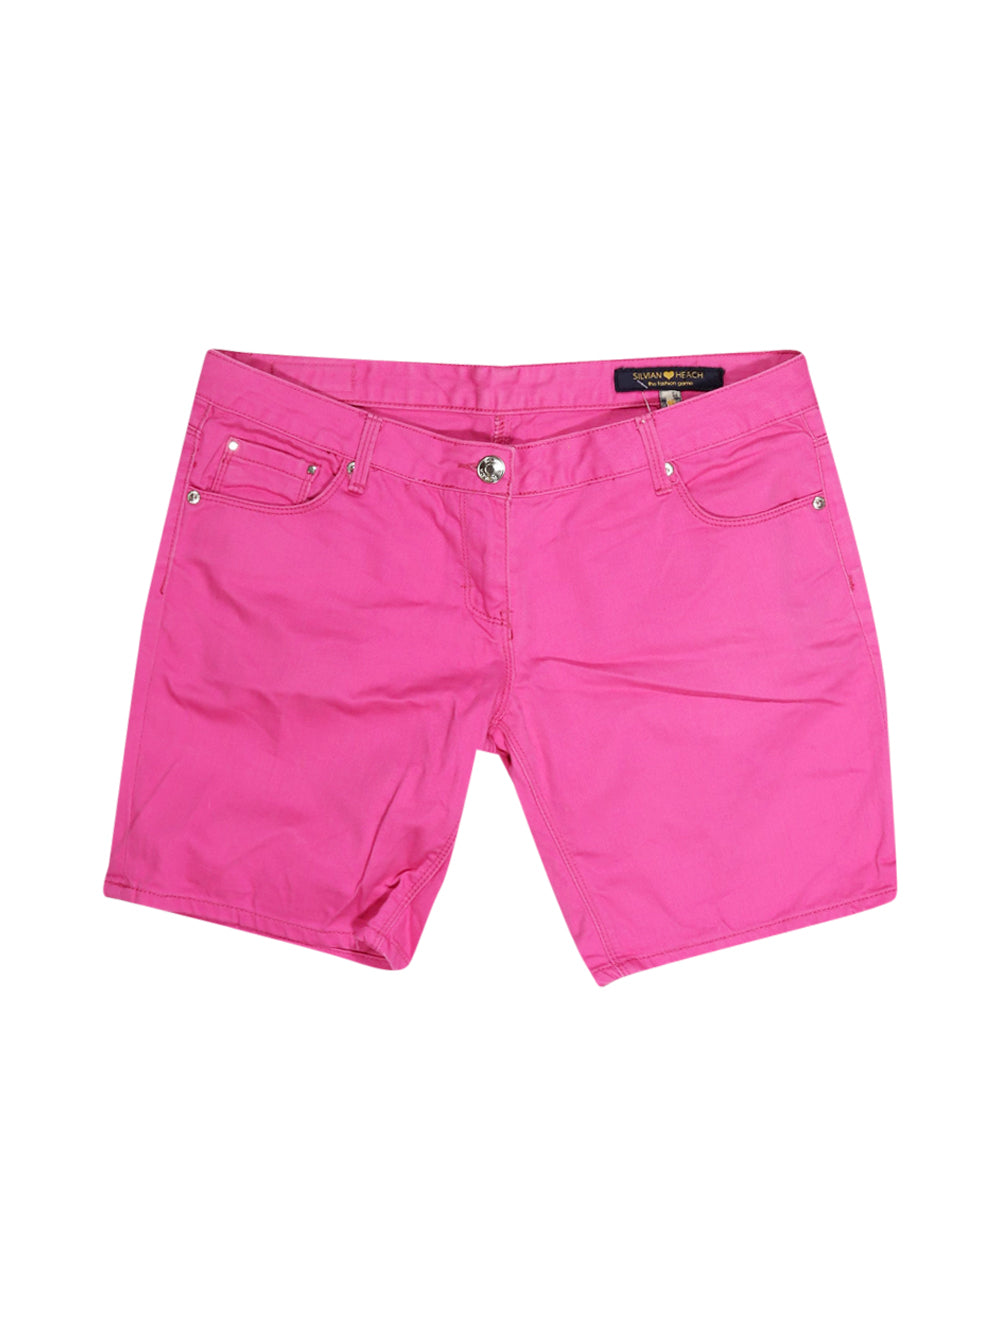 Front photo of Preloved Silvian Heach Pink Woman's shorts - size 12/L